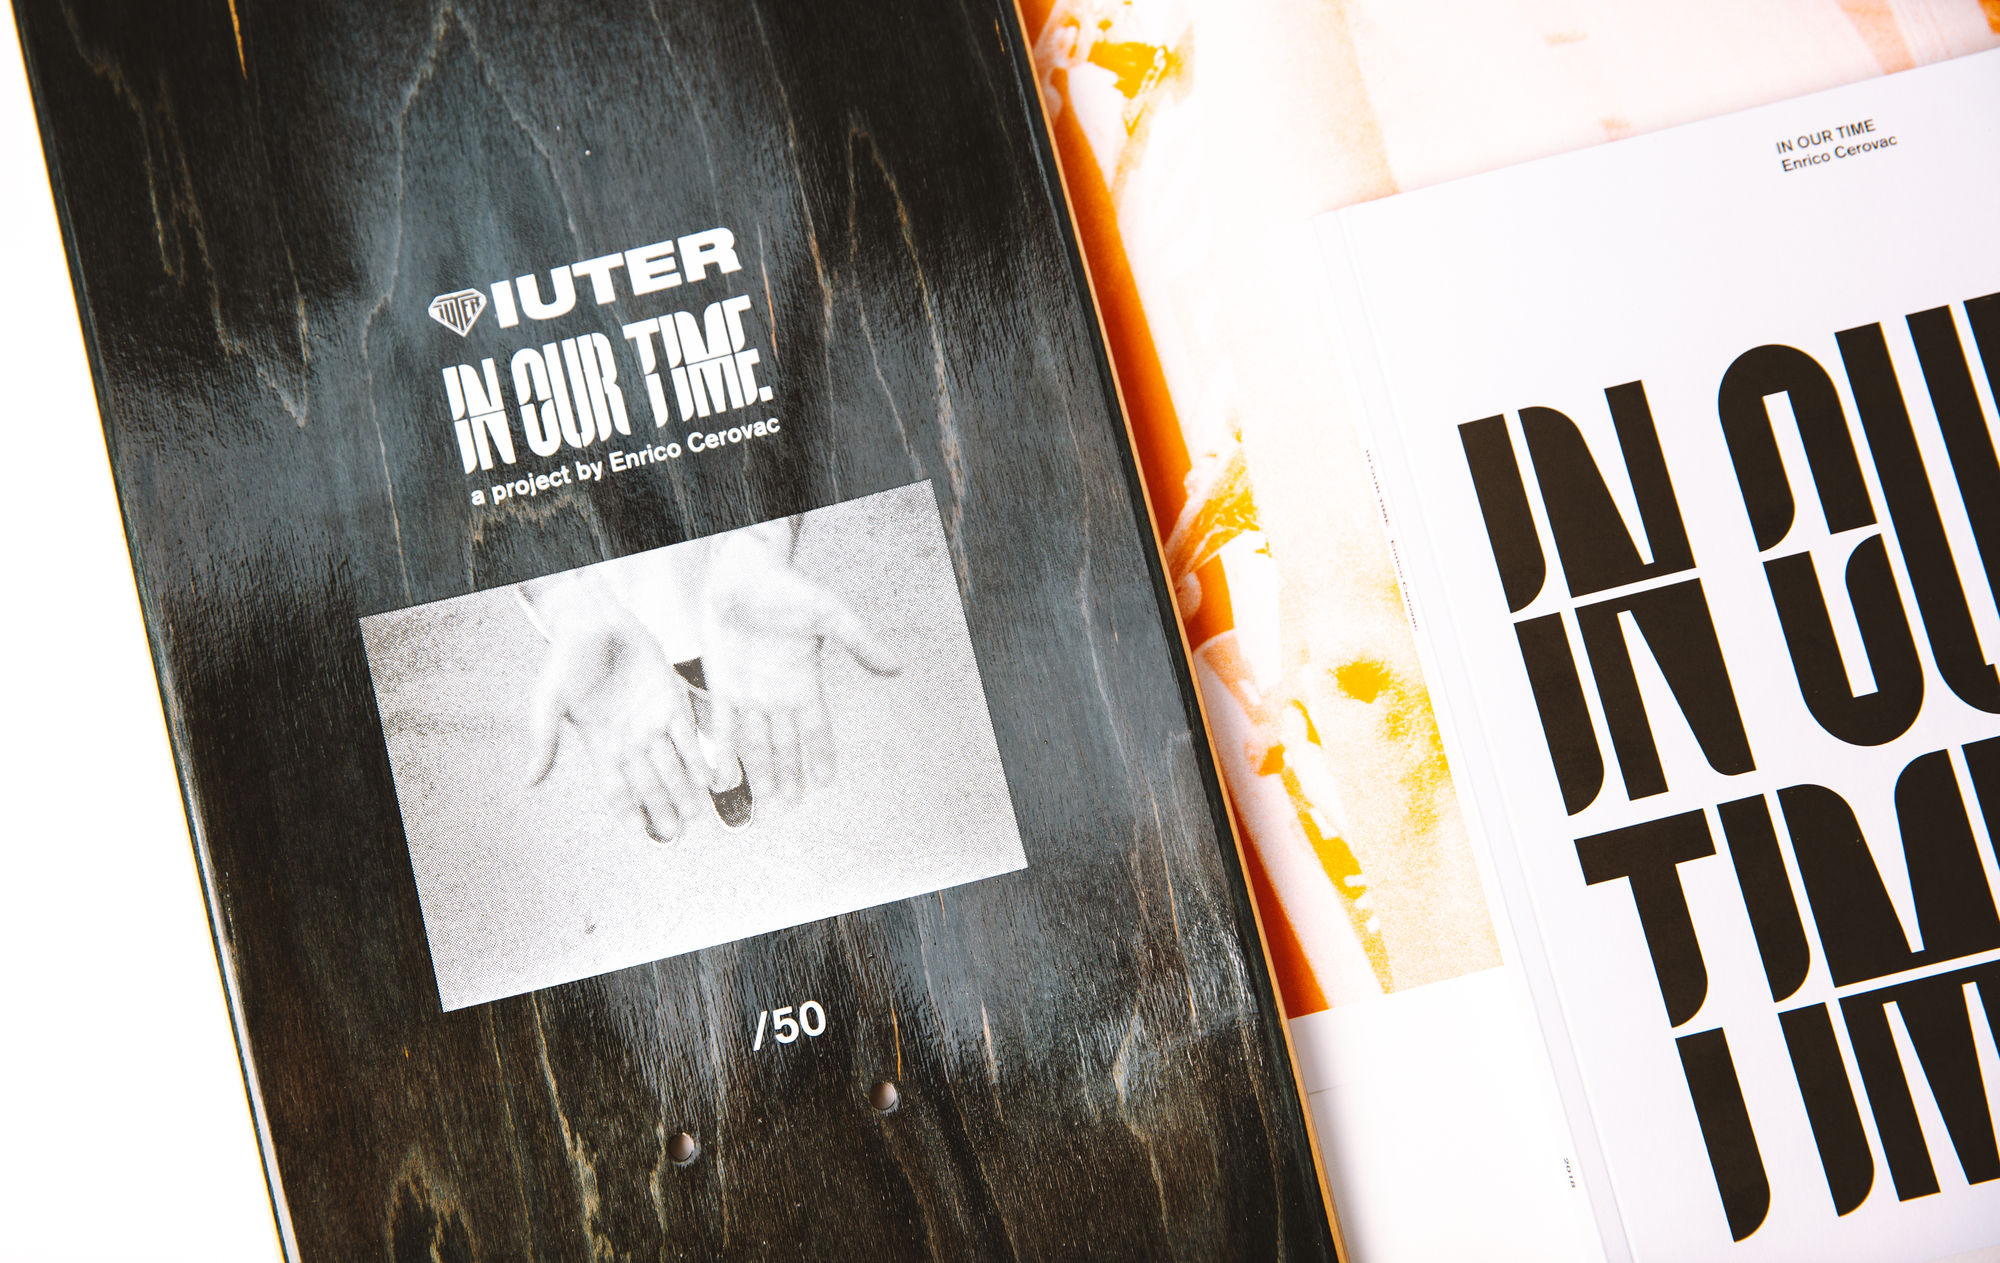 IUTER x In Our Time by Enrico Cerovac Supported by Vans and IUTER